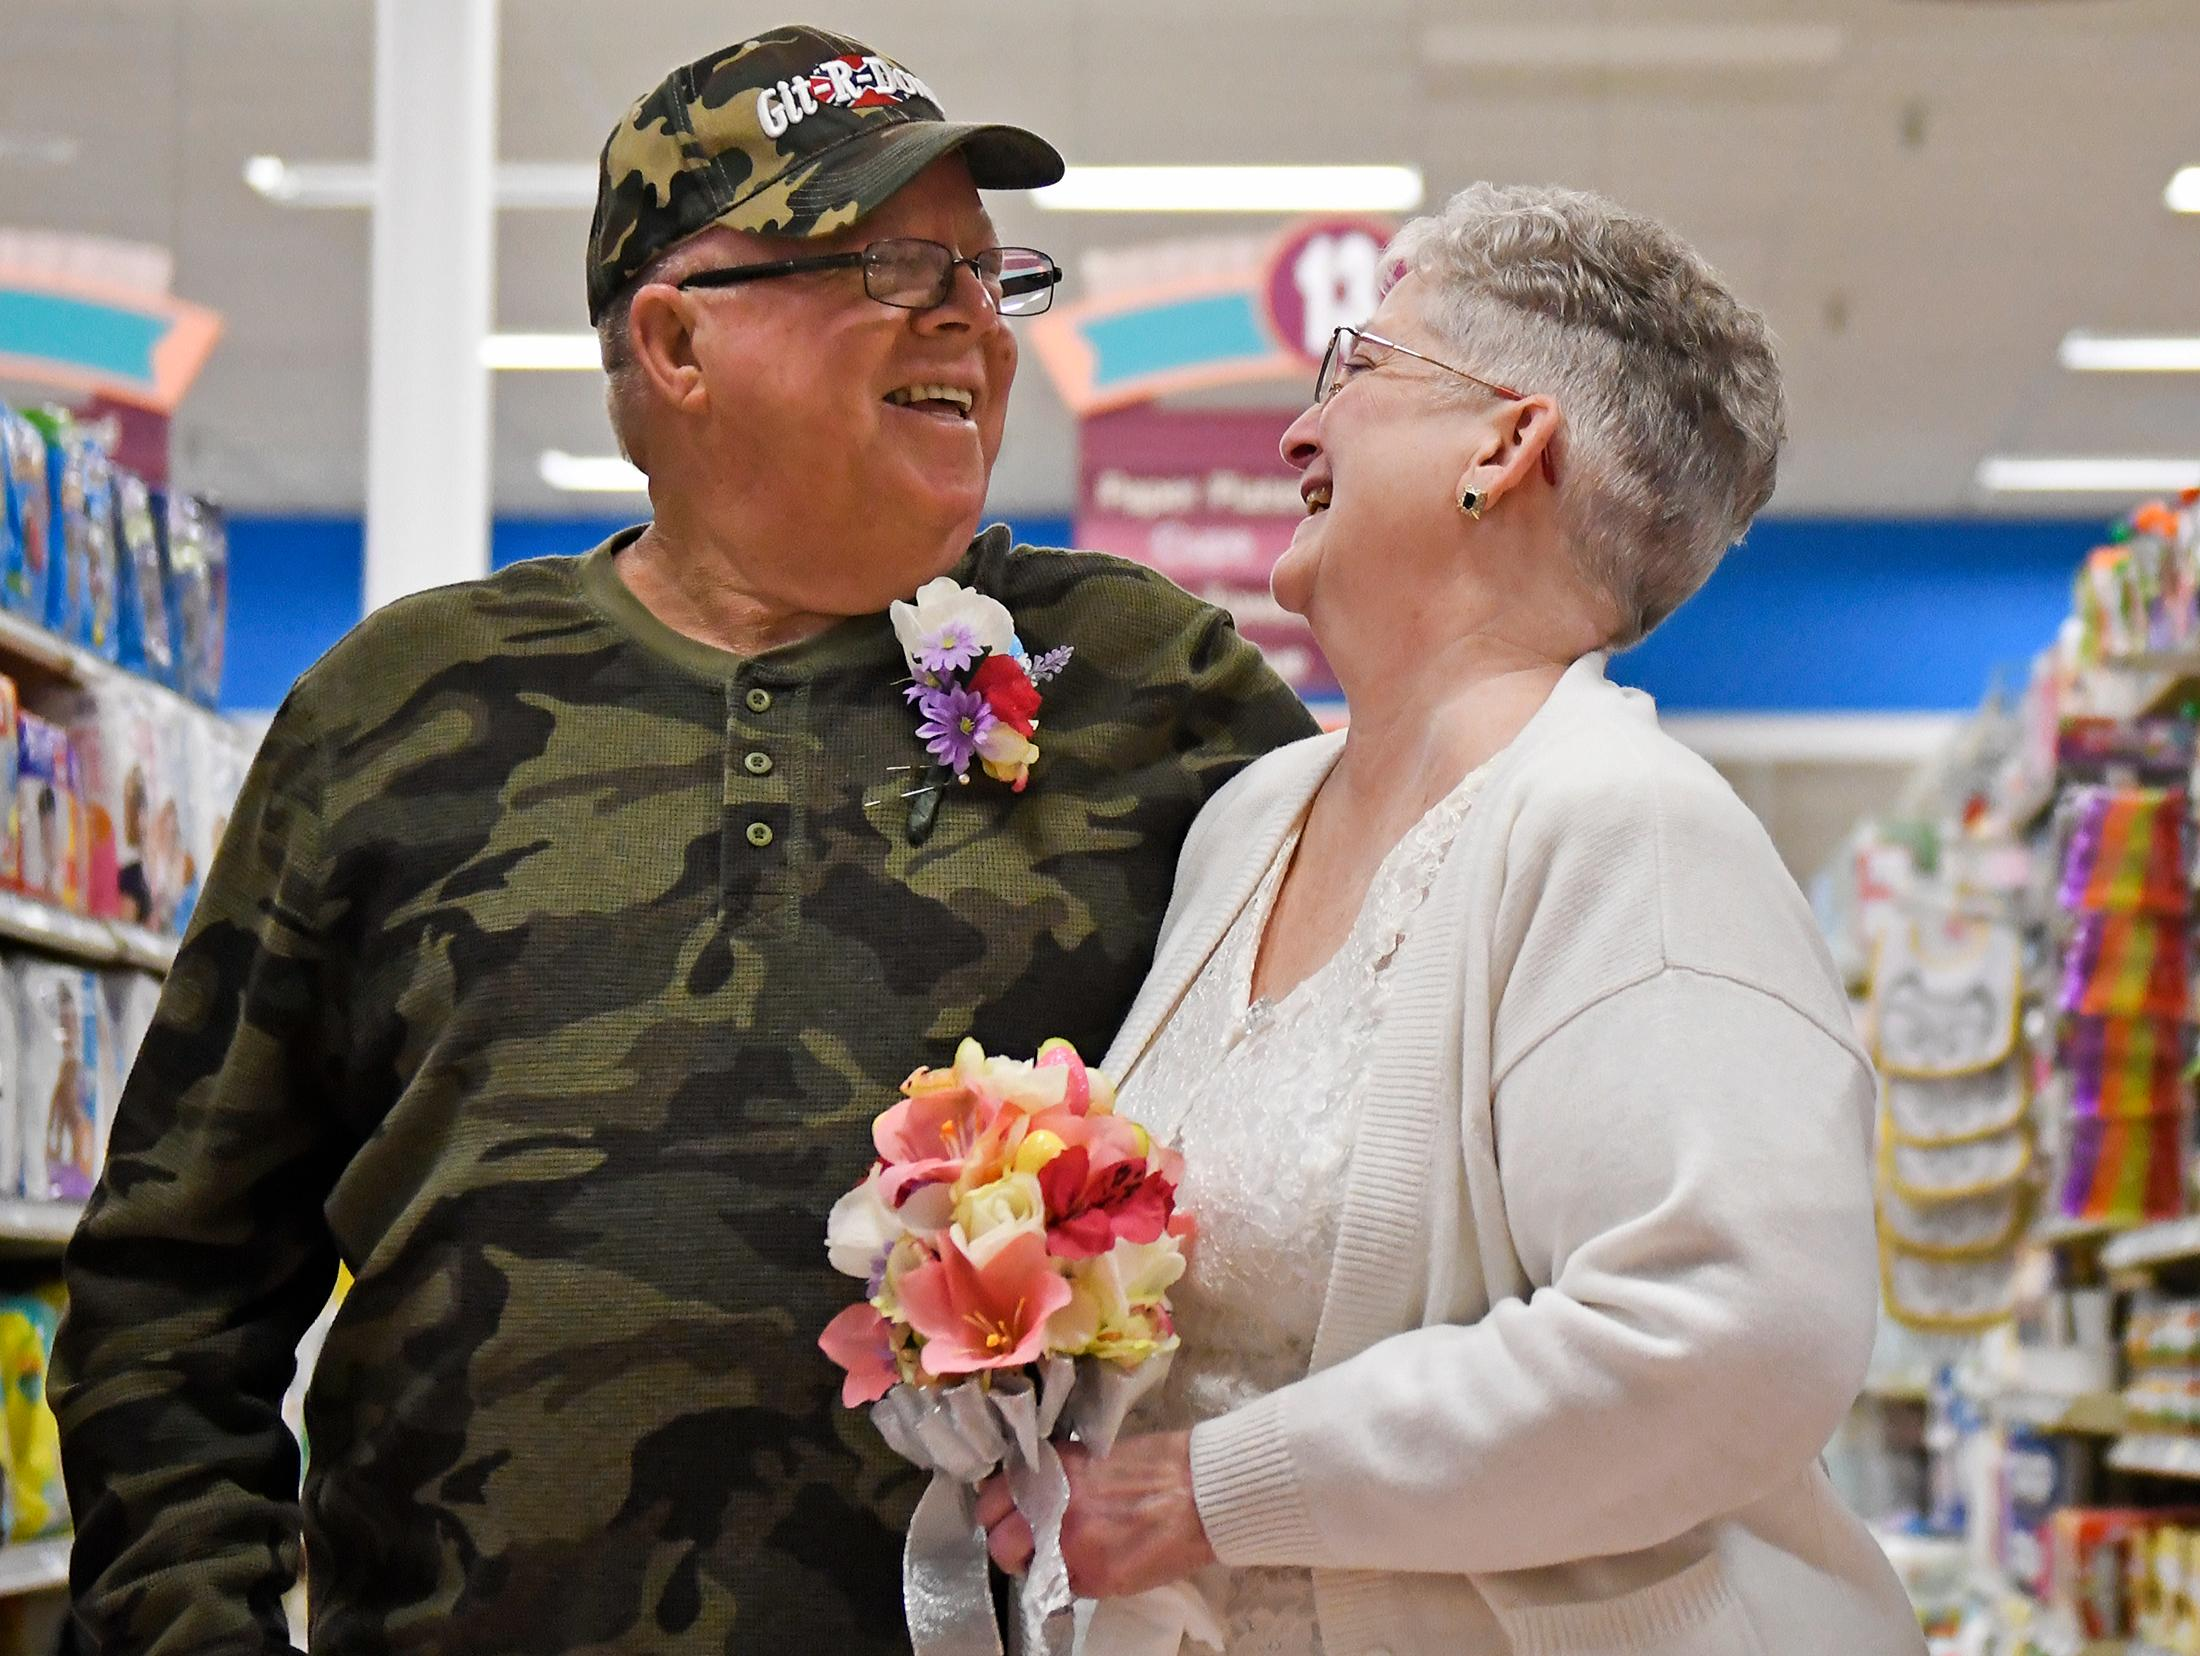 In this April 1, 2018 photo, Larry Spiering and Becky Smith smile where they held their wedding ceremony on Easter Sunday in aisle 13 of the Community Market in Lower Burrell, Pa. Smith said she was working at the supermarket when Spiering walked up and gave her a piece of paper with his name and phone number on it. She said it was only fitting that they married in the aisle where they met. (Jack Fordyce/Pittsburgh Tribune-Review via AP)